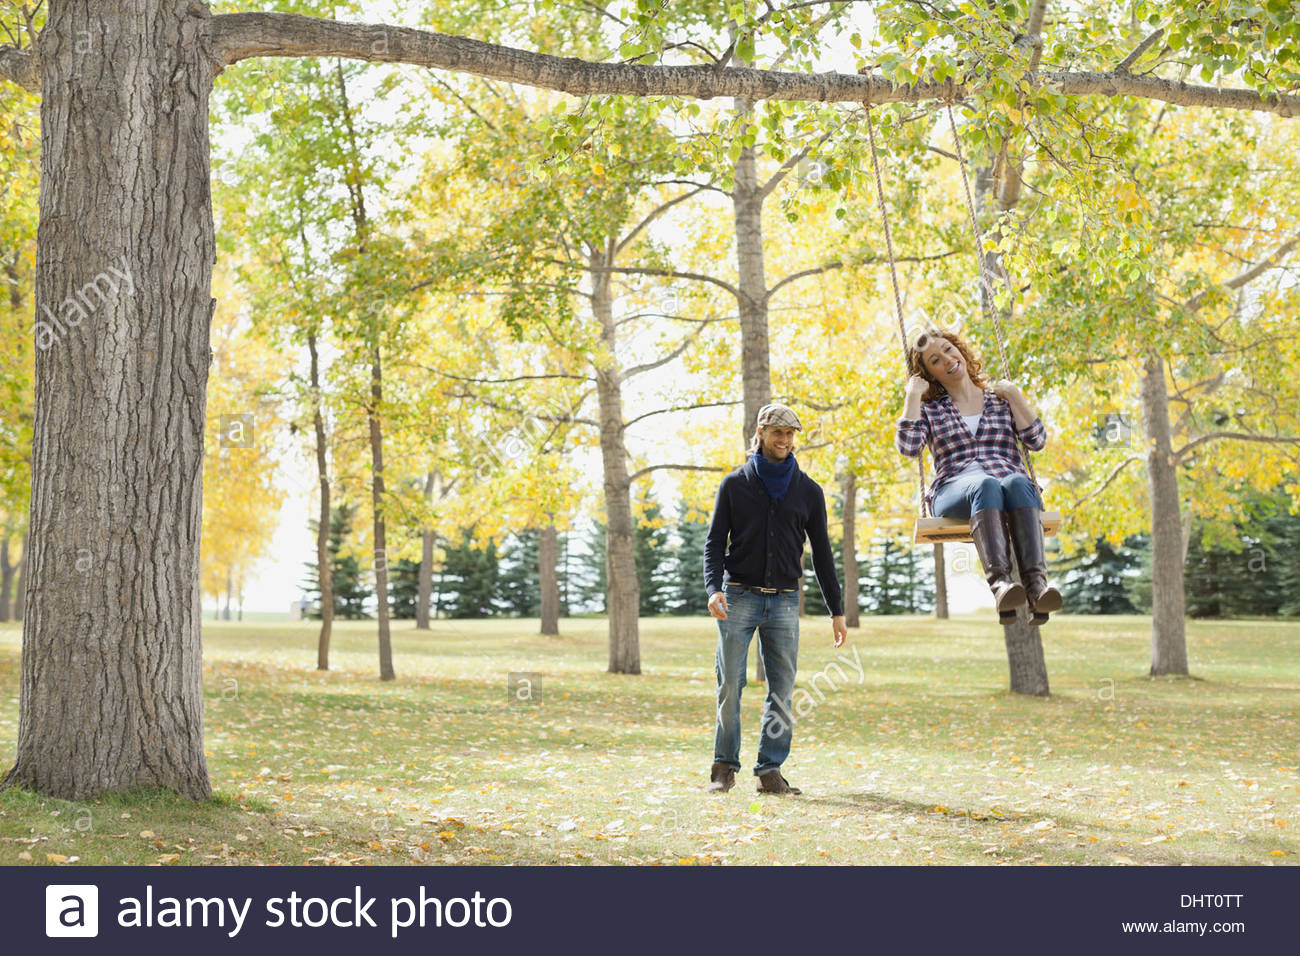 Full length of happy man looking at woman swinging in park - Stock Image